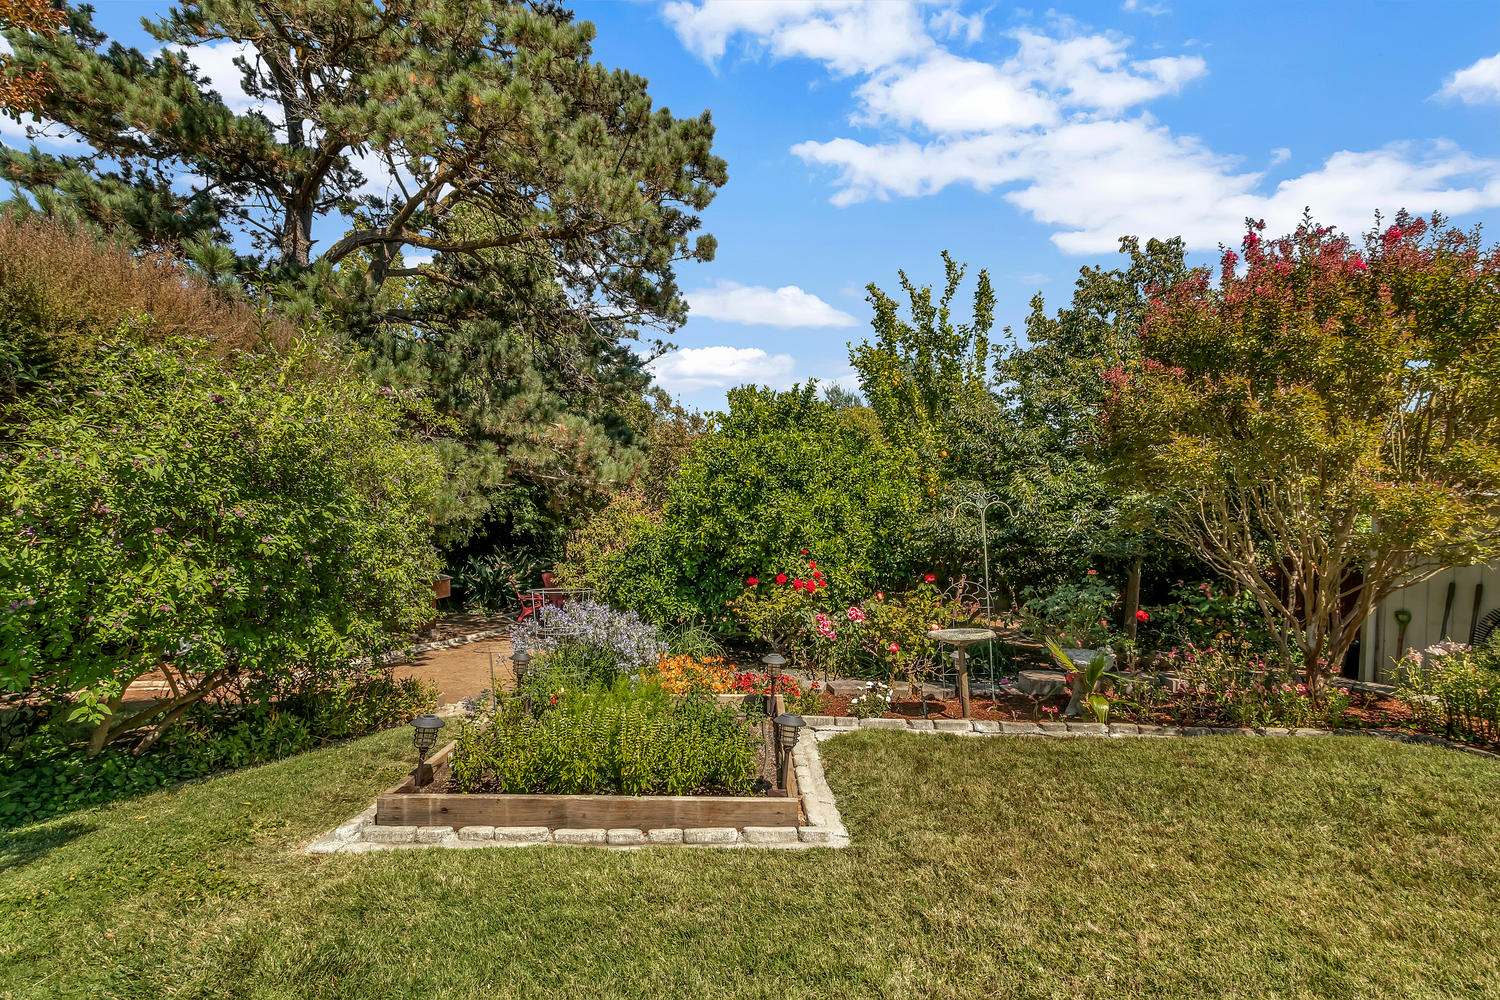 The secluded backyard offers a park-like setting with mature trees, roses and professional landscaping.